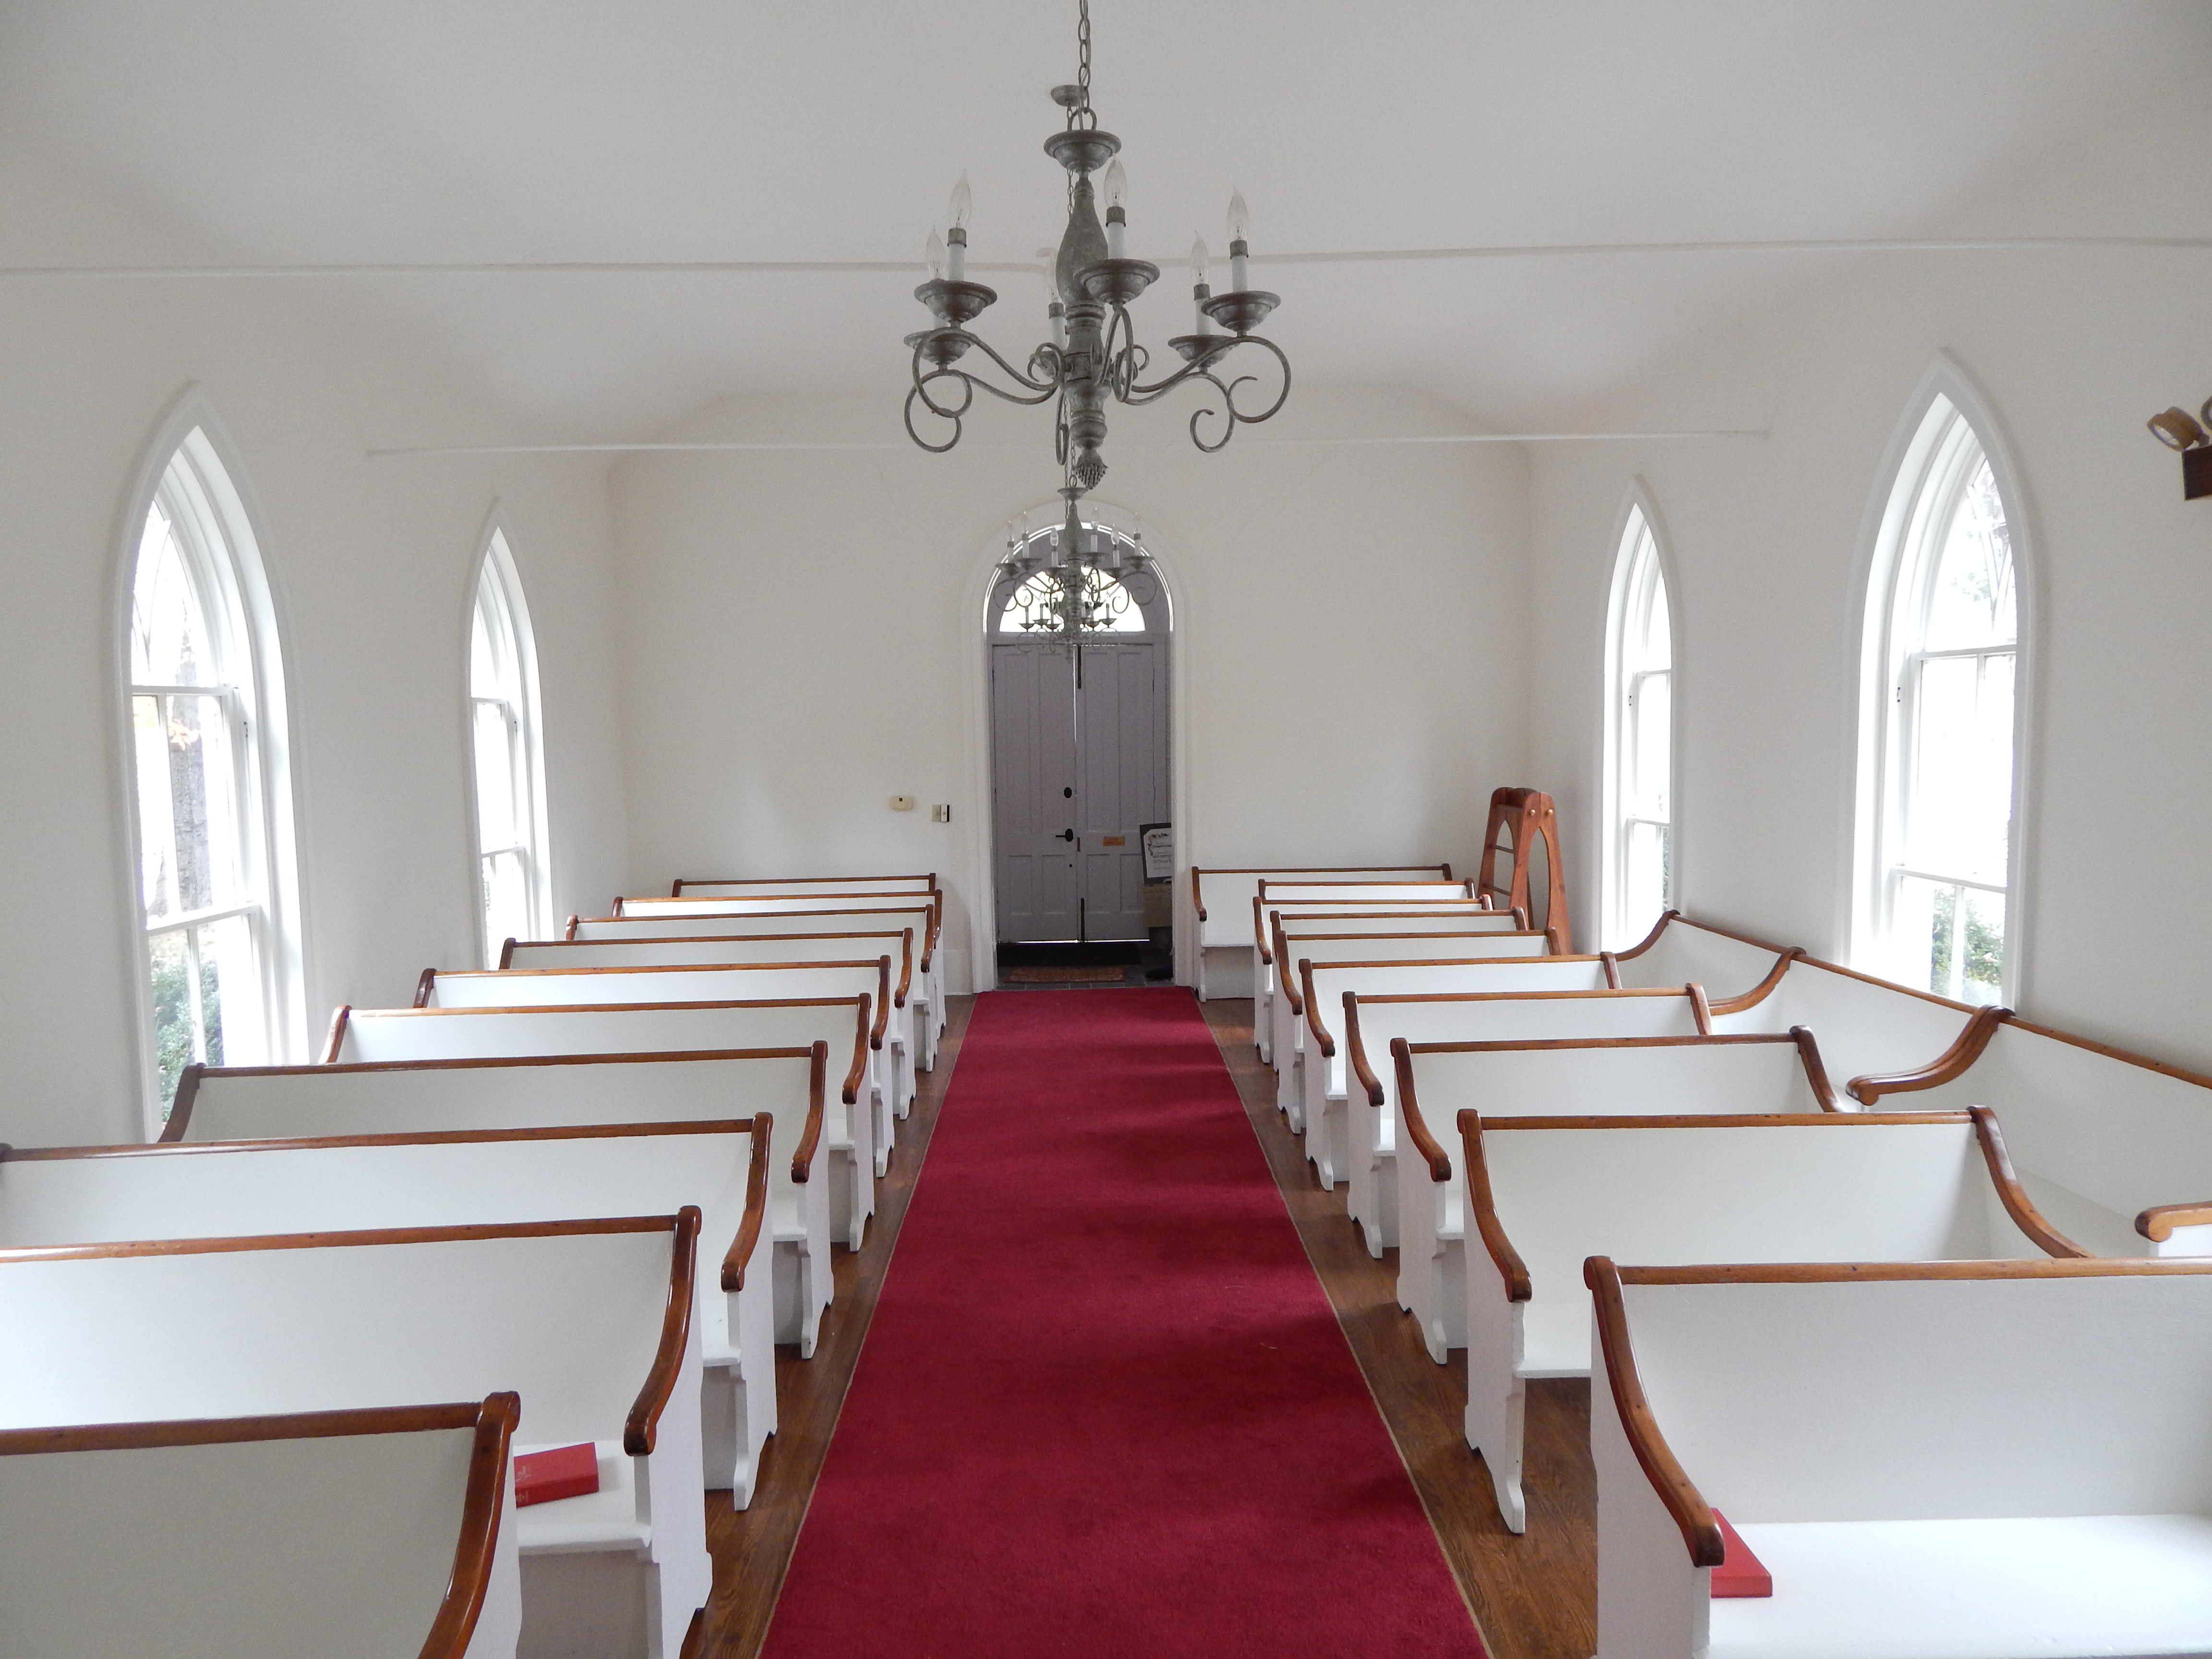 Interior of Chapel from Altar